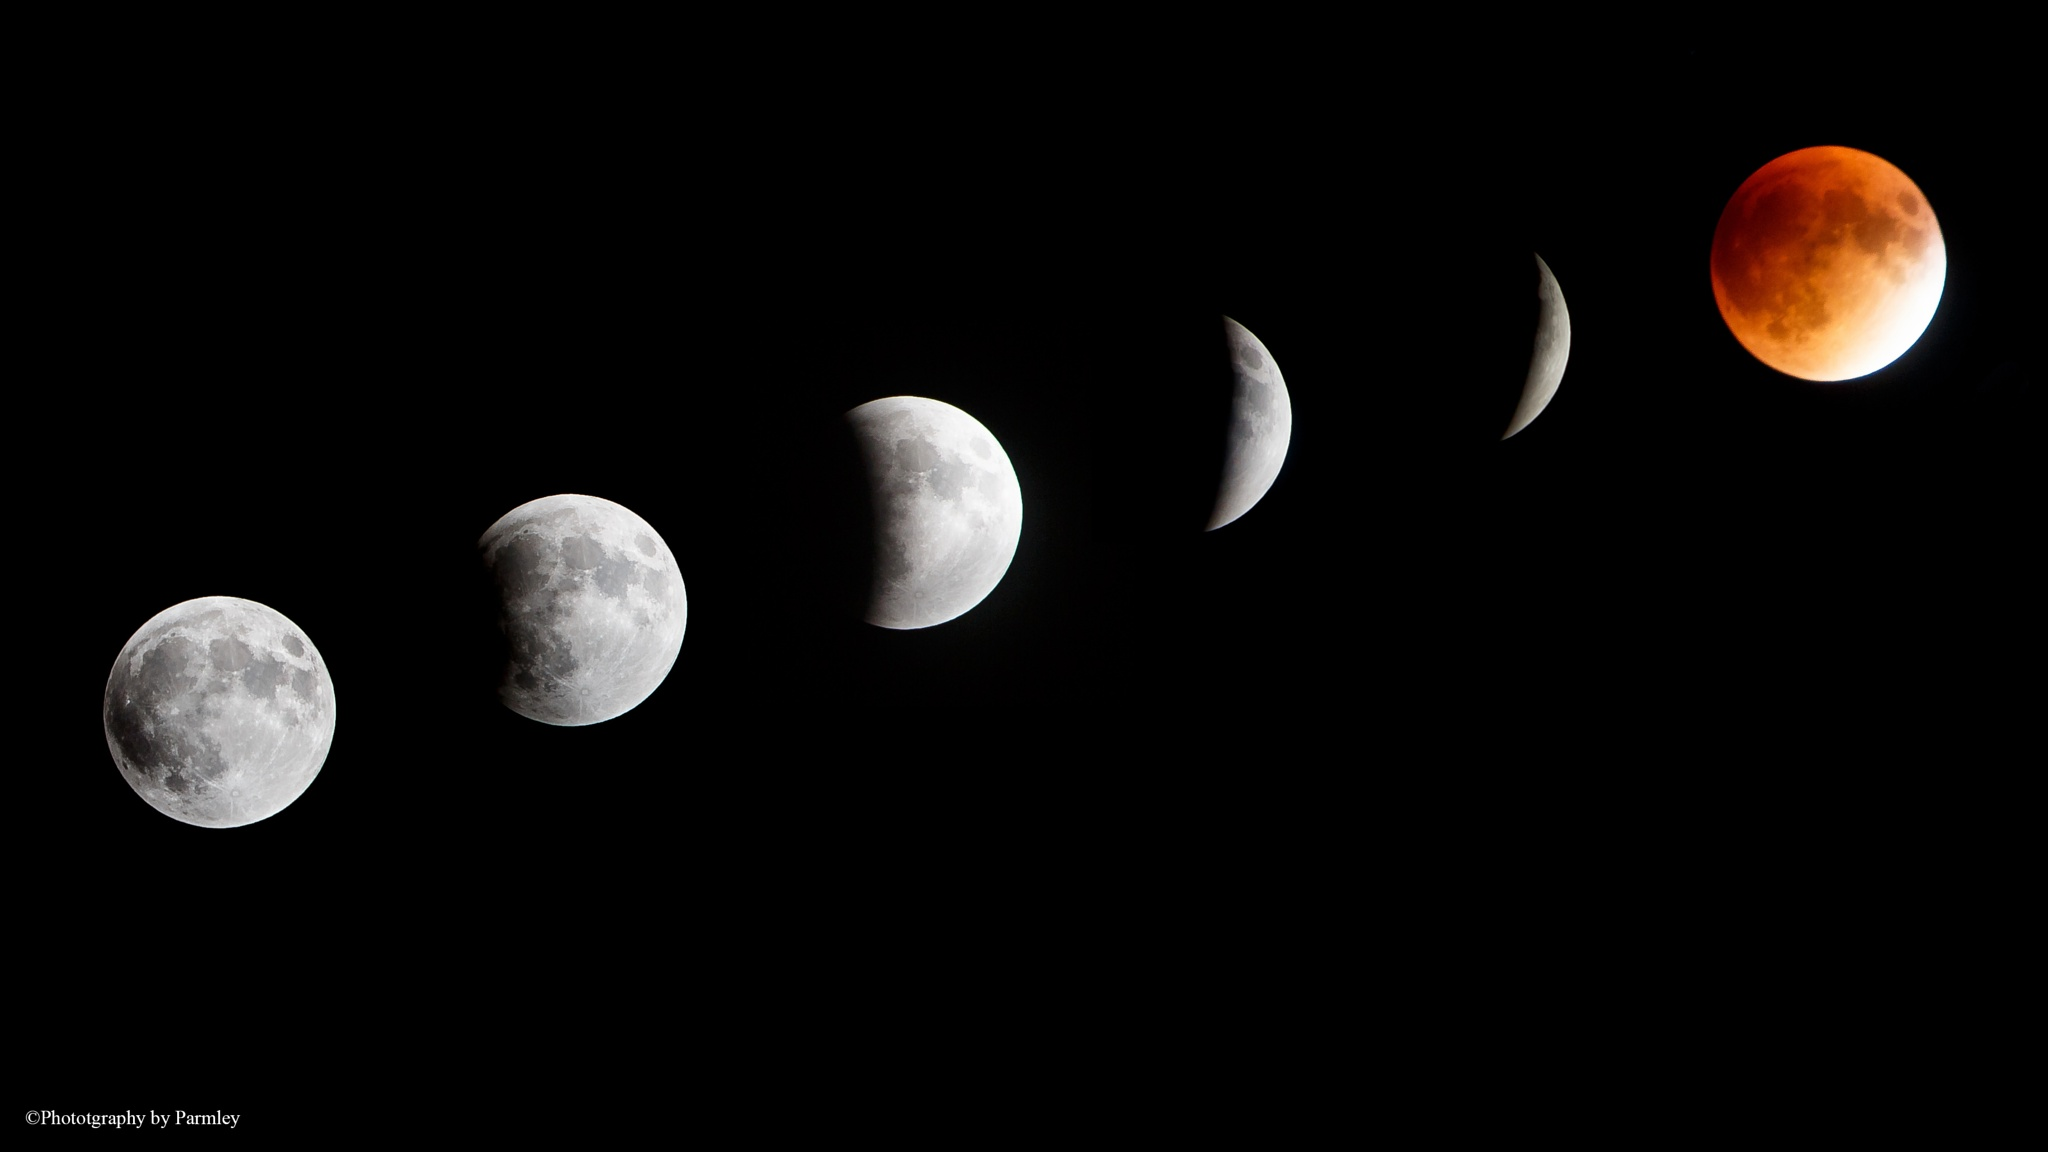 Eclipse by JP Parmley